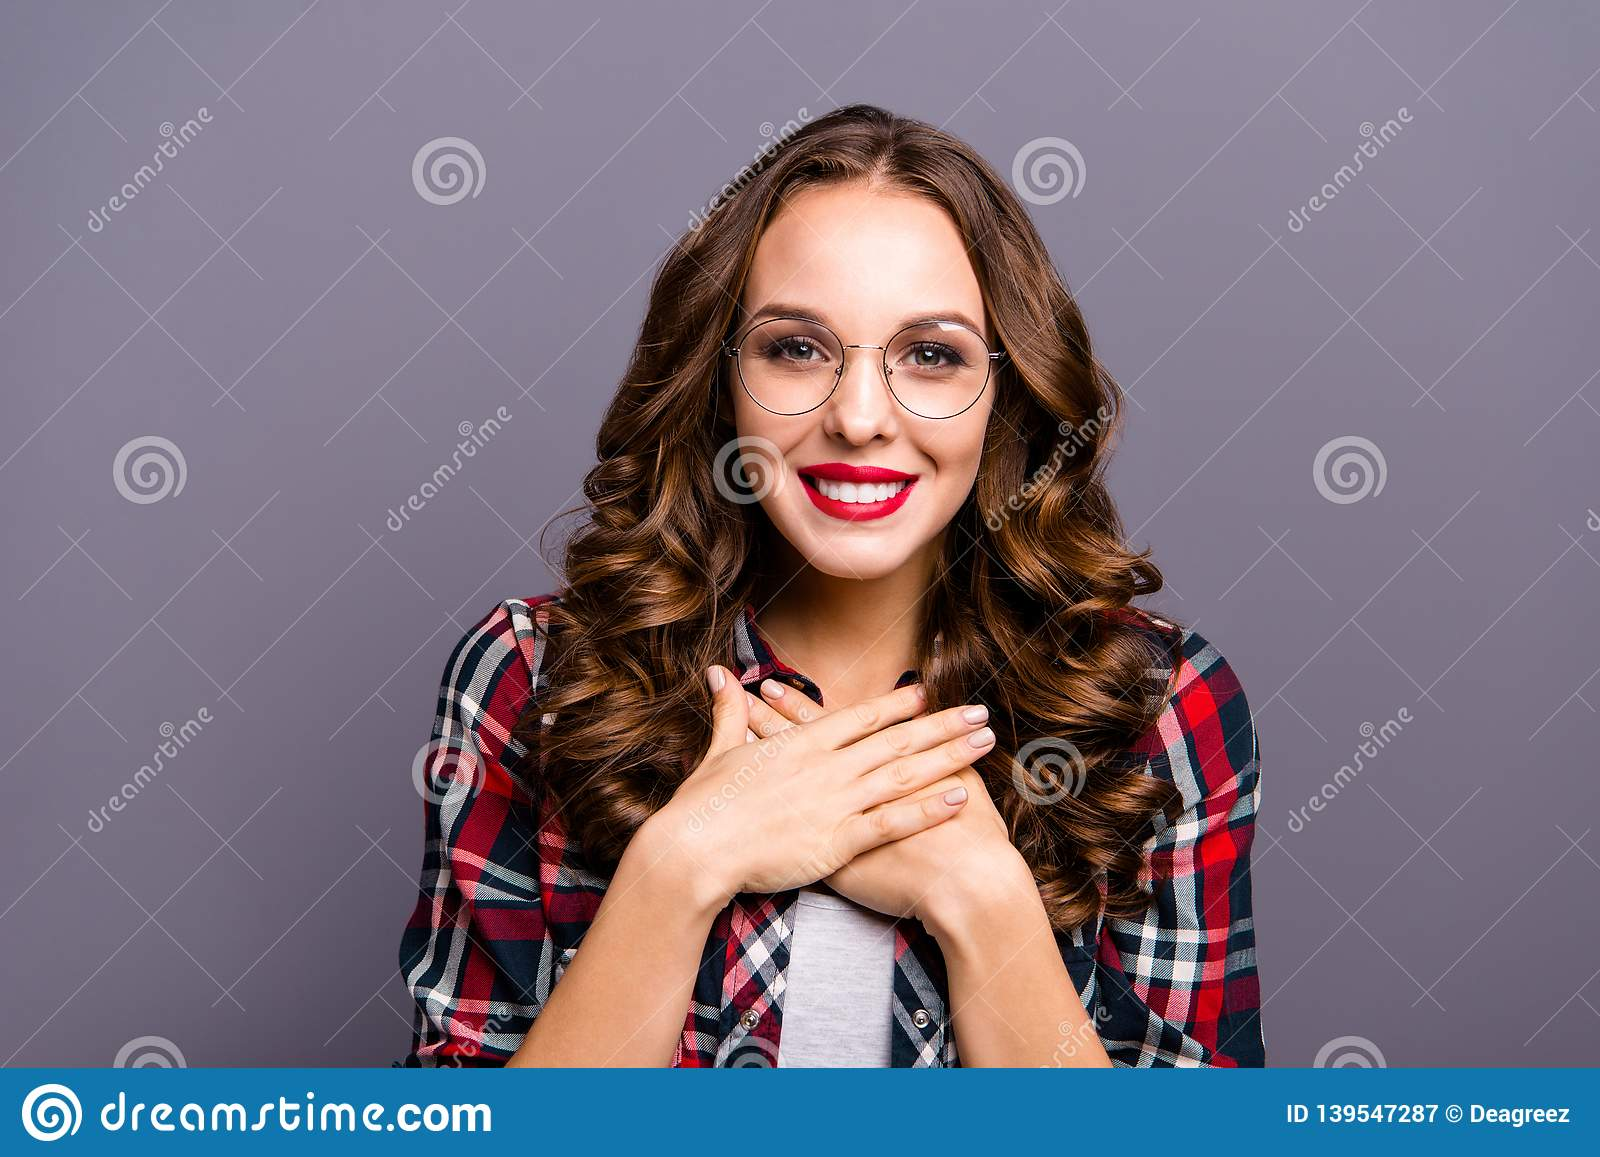 Close up portrait of amazing beautiful she her lady overjoyed feelings emotions kindhearted sweet glad wearing specs